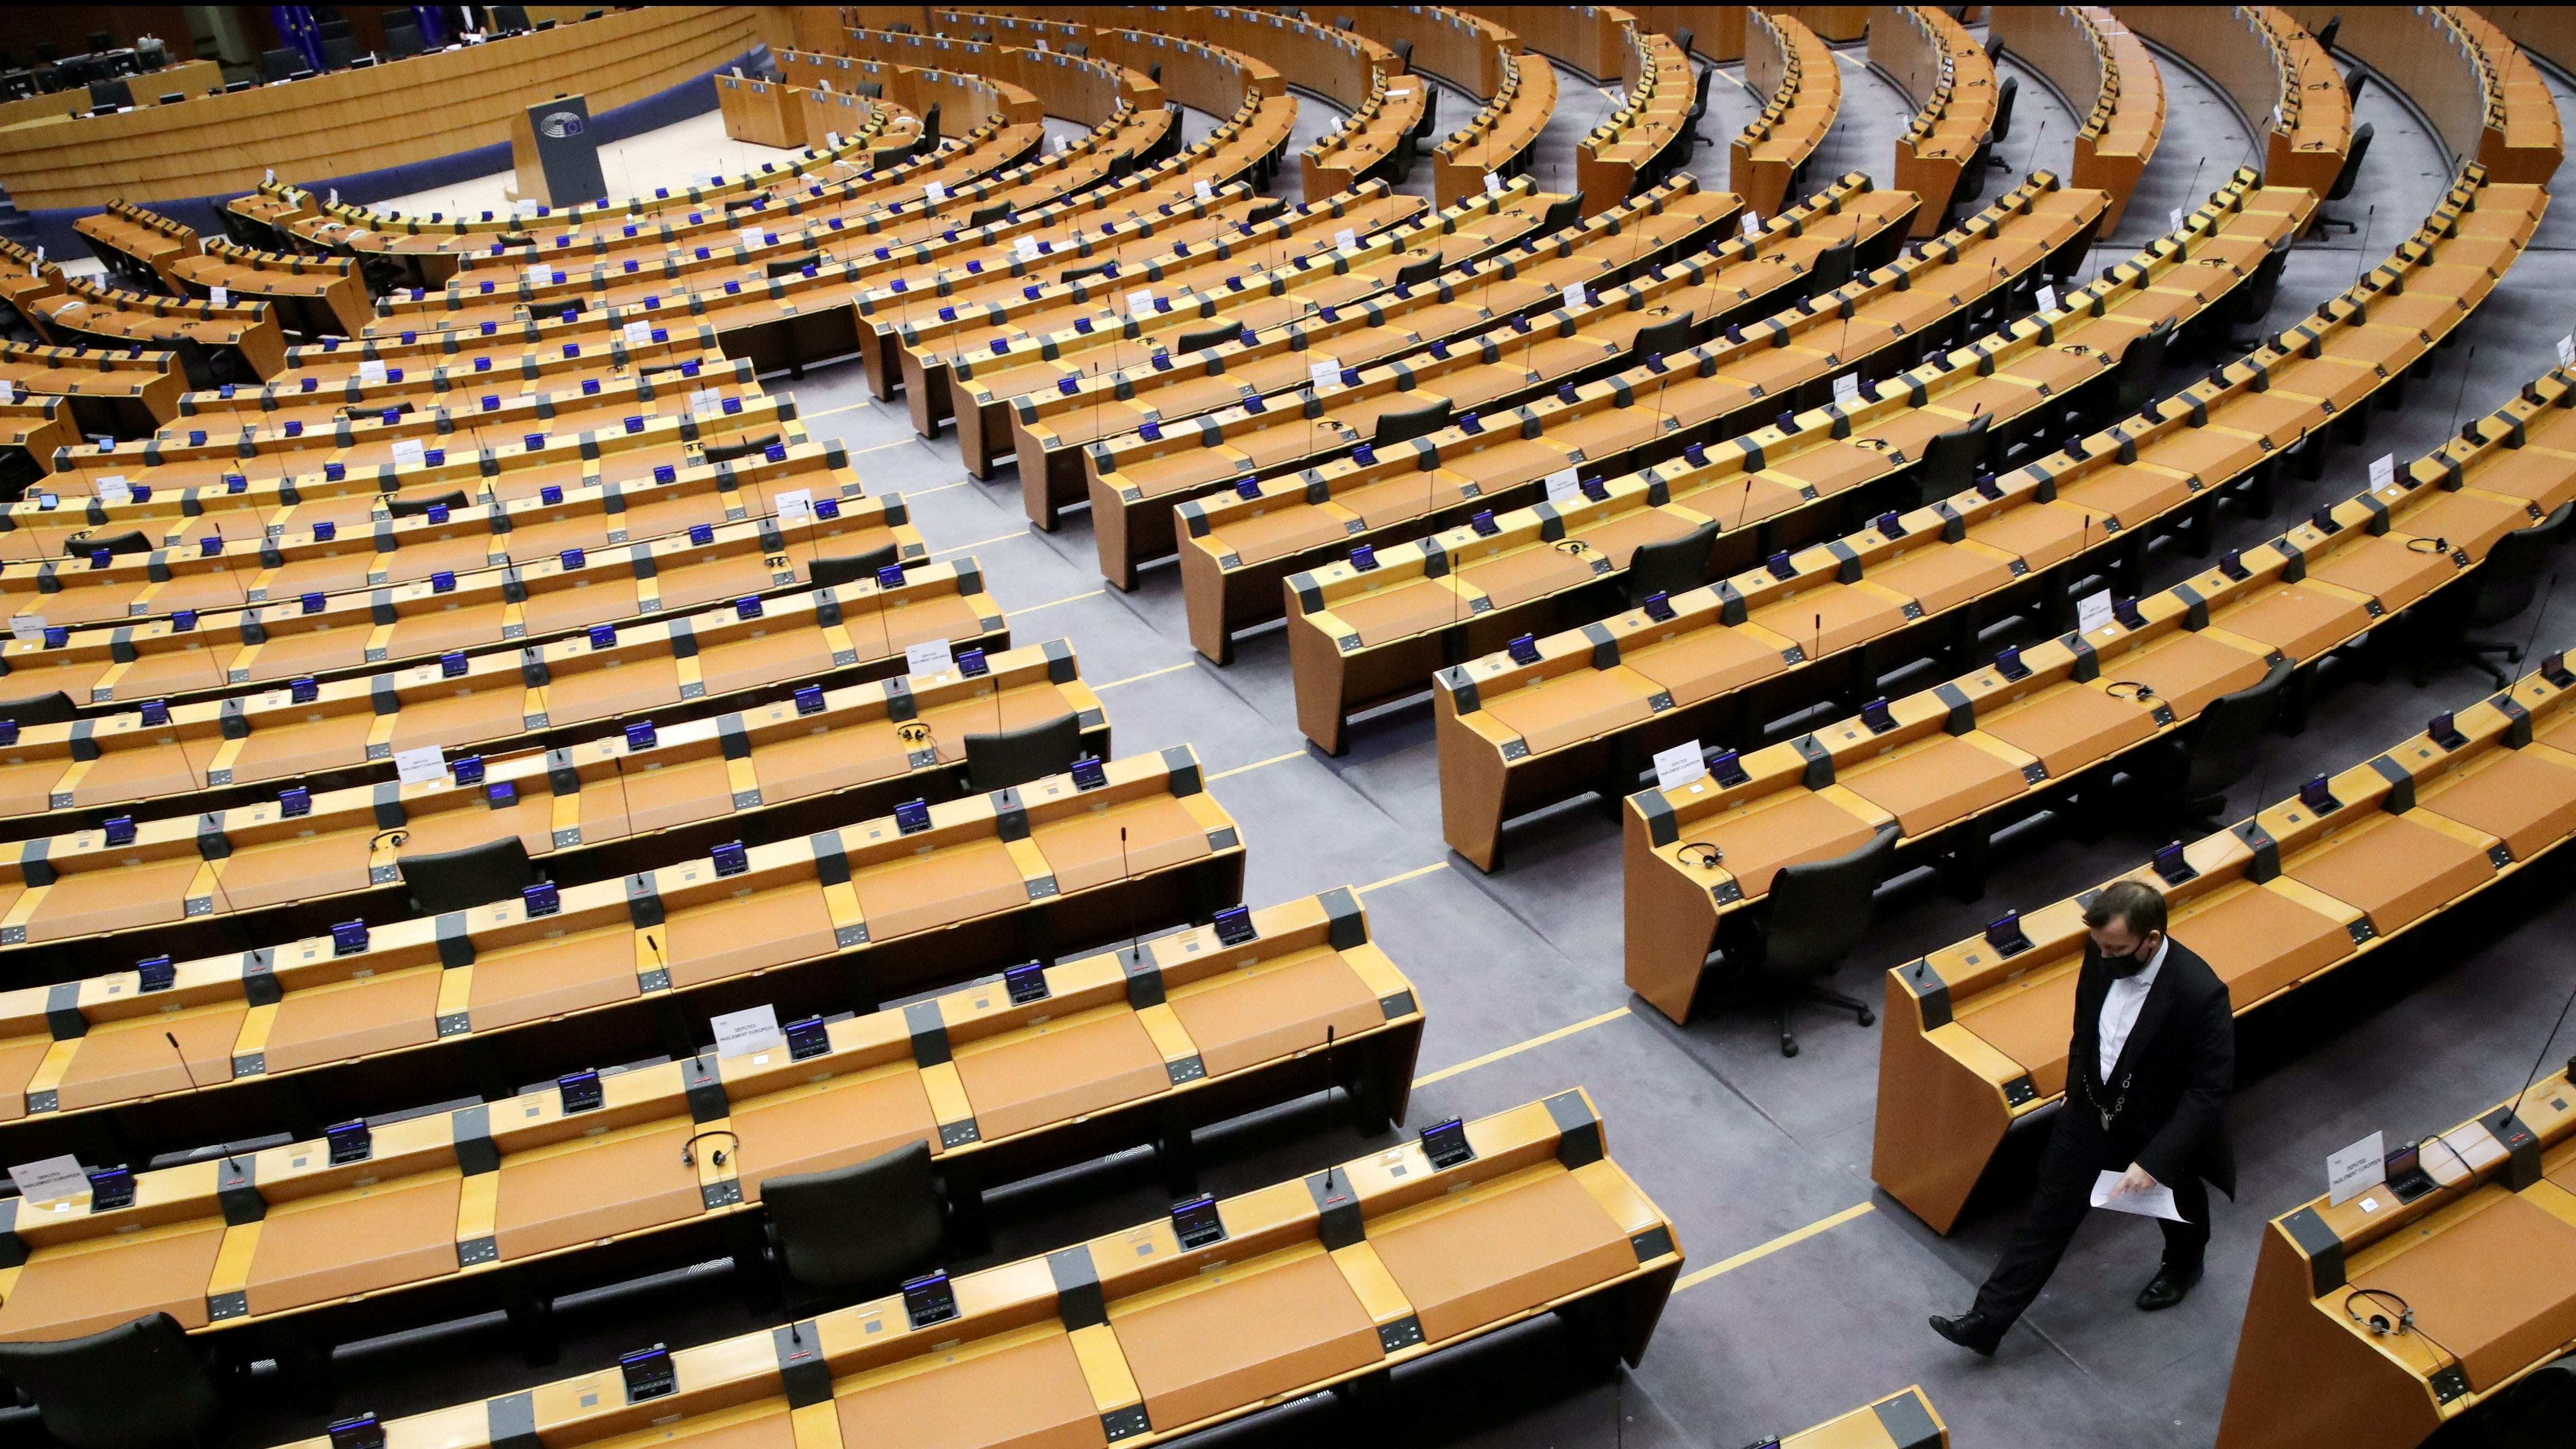 The Inside of the plenary room of the European Parliament